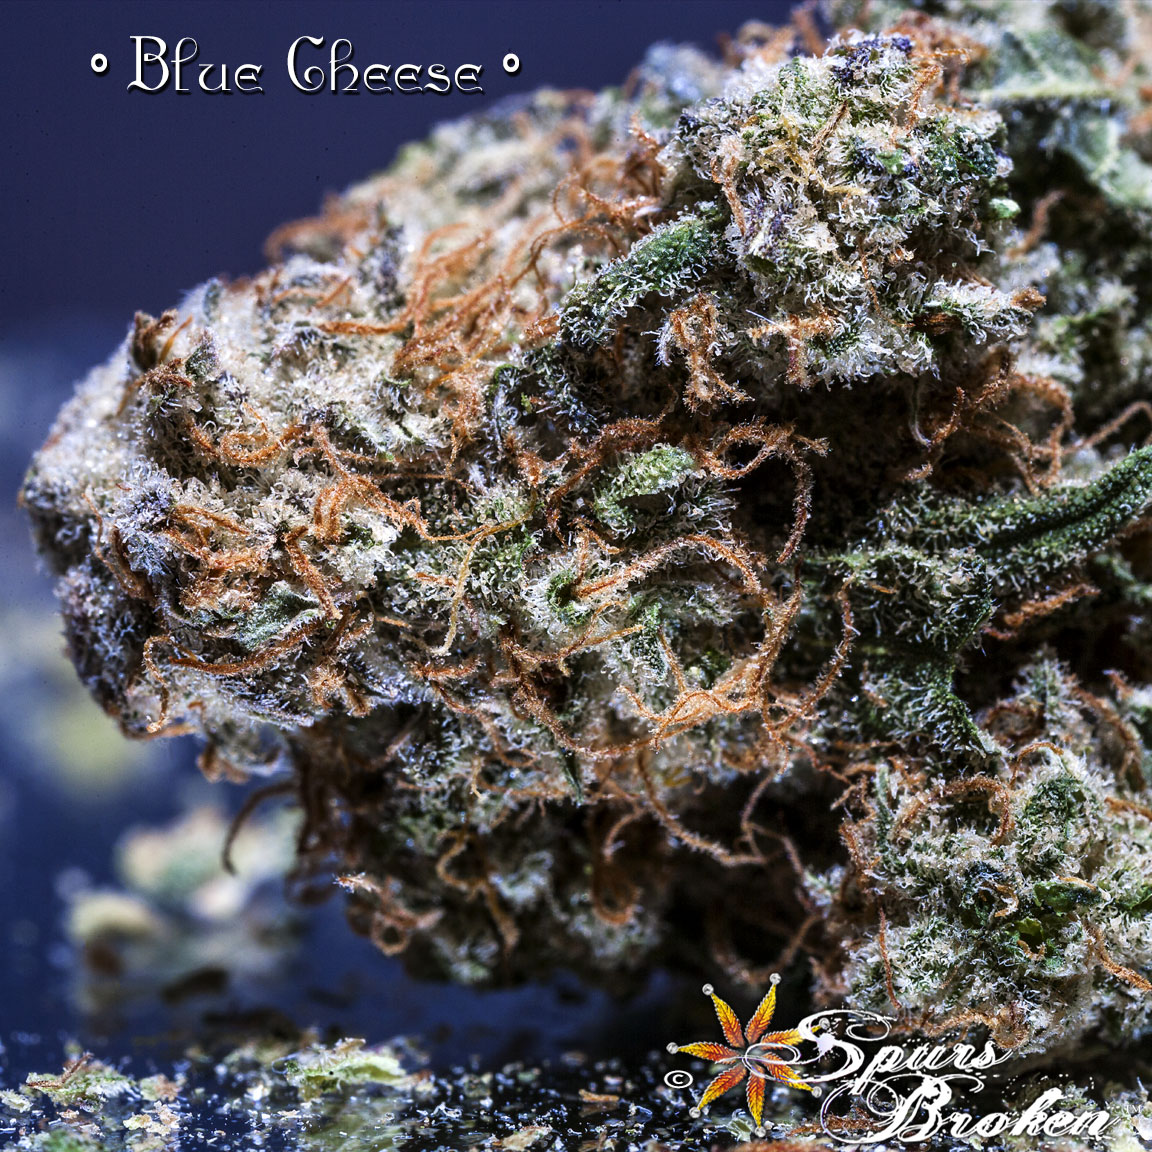 Blue Cheese - Cannabis Macro Photography by Spurs Broken (Robert R. Sanders)